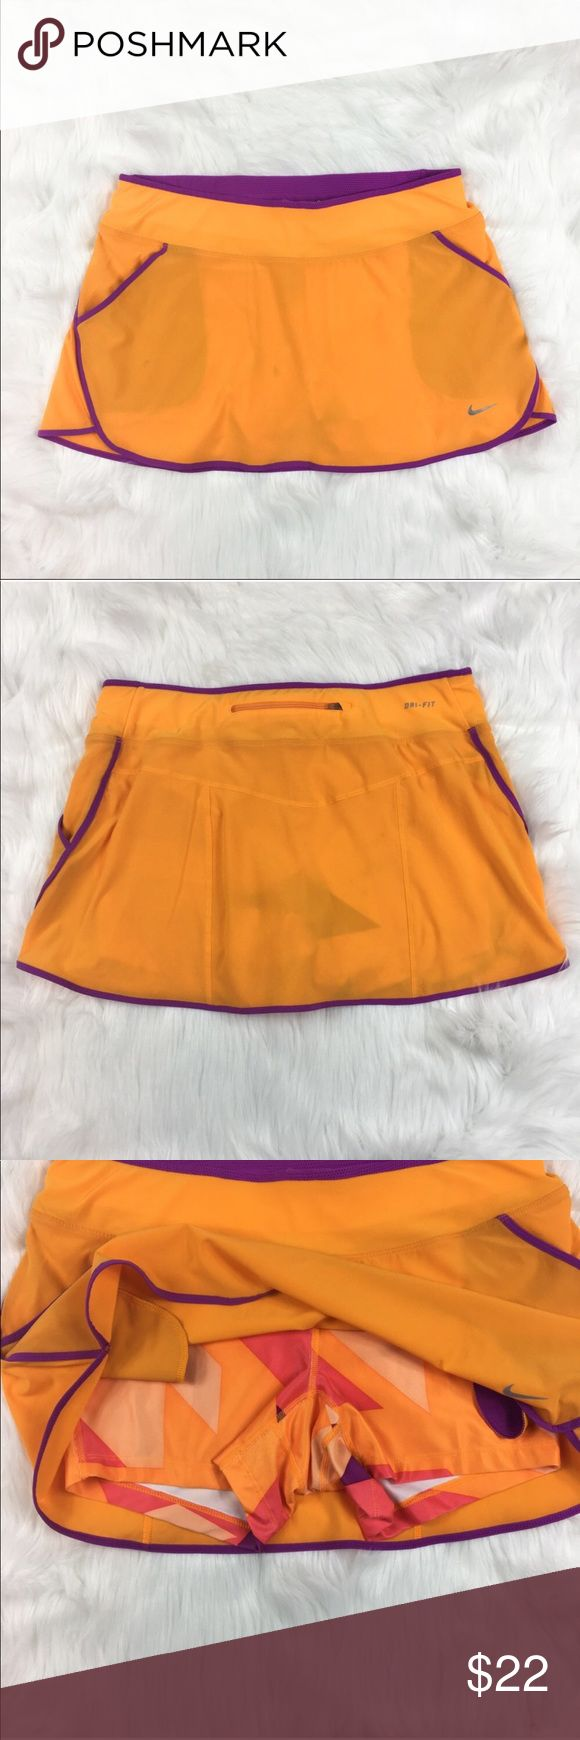 Nike Dry-Fit Skort Nike Running orange & purple dry-fit skort. Size medium. Pre-Owned conditon. Had stain as pictured. Has multi colored compression shorts underneath. ❌I do not Trade 🙅🏻 Or model 💲 Posh Transactions ONLY Nike Shorts Skorts